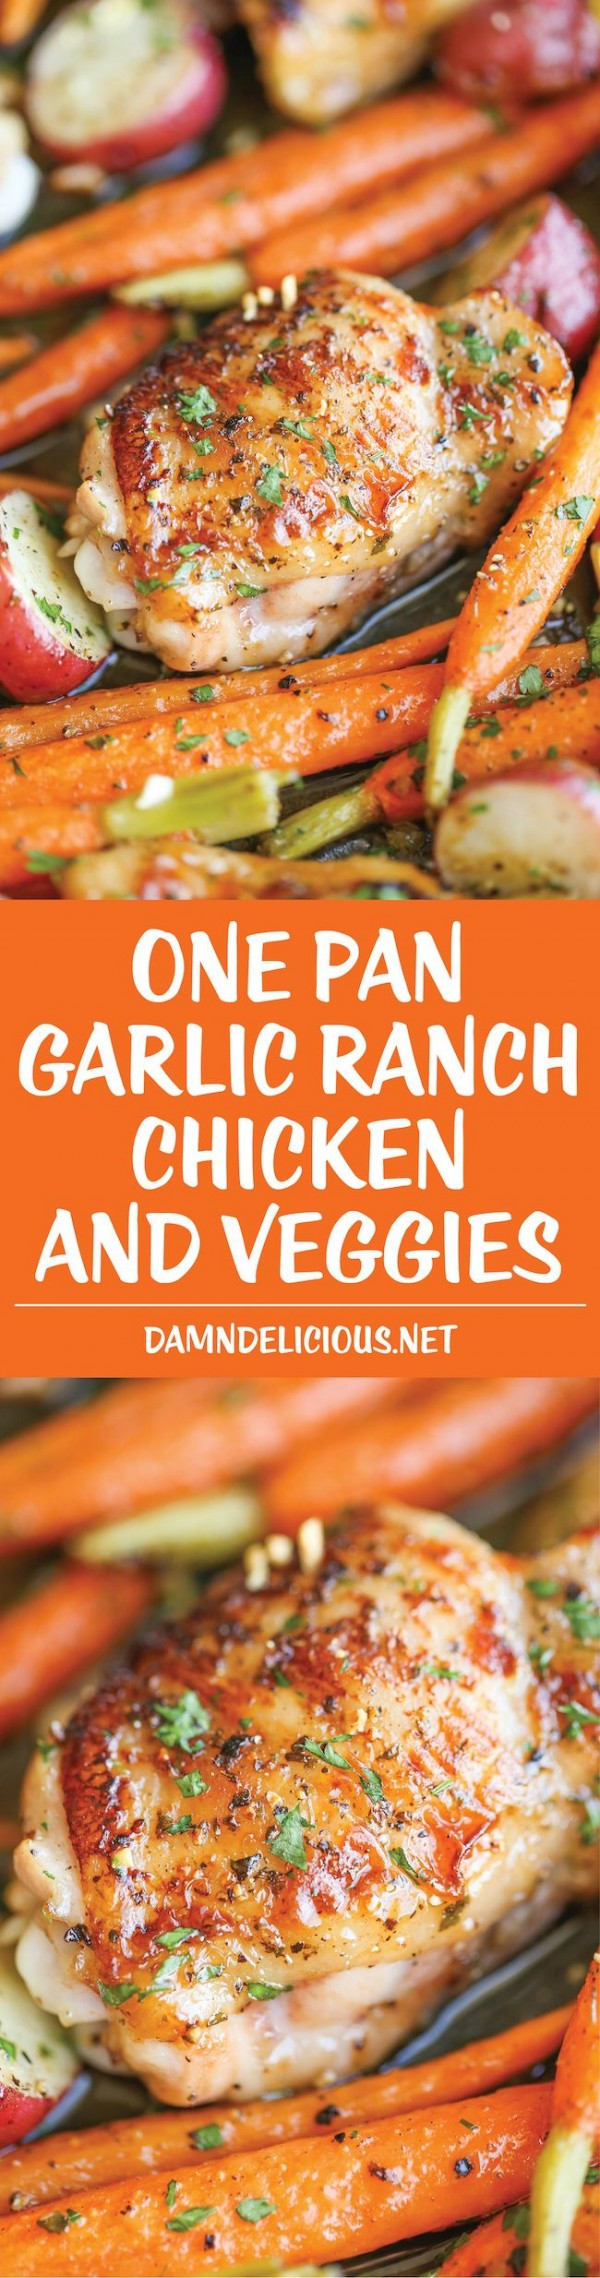 50 Best Chicken Recipes Ever - Check out this recipe for one pan garlic ranch chicken and veggies. Yummy! #RecipeIdeas @recipes_to_go